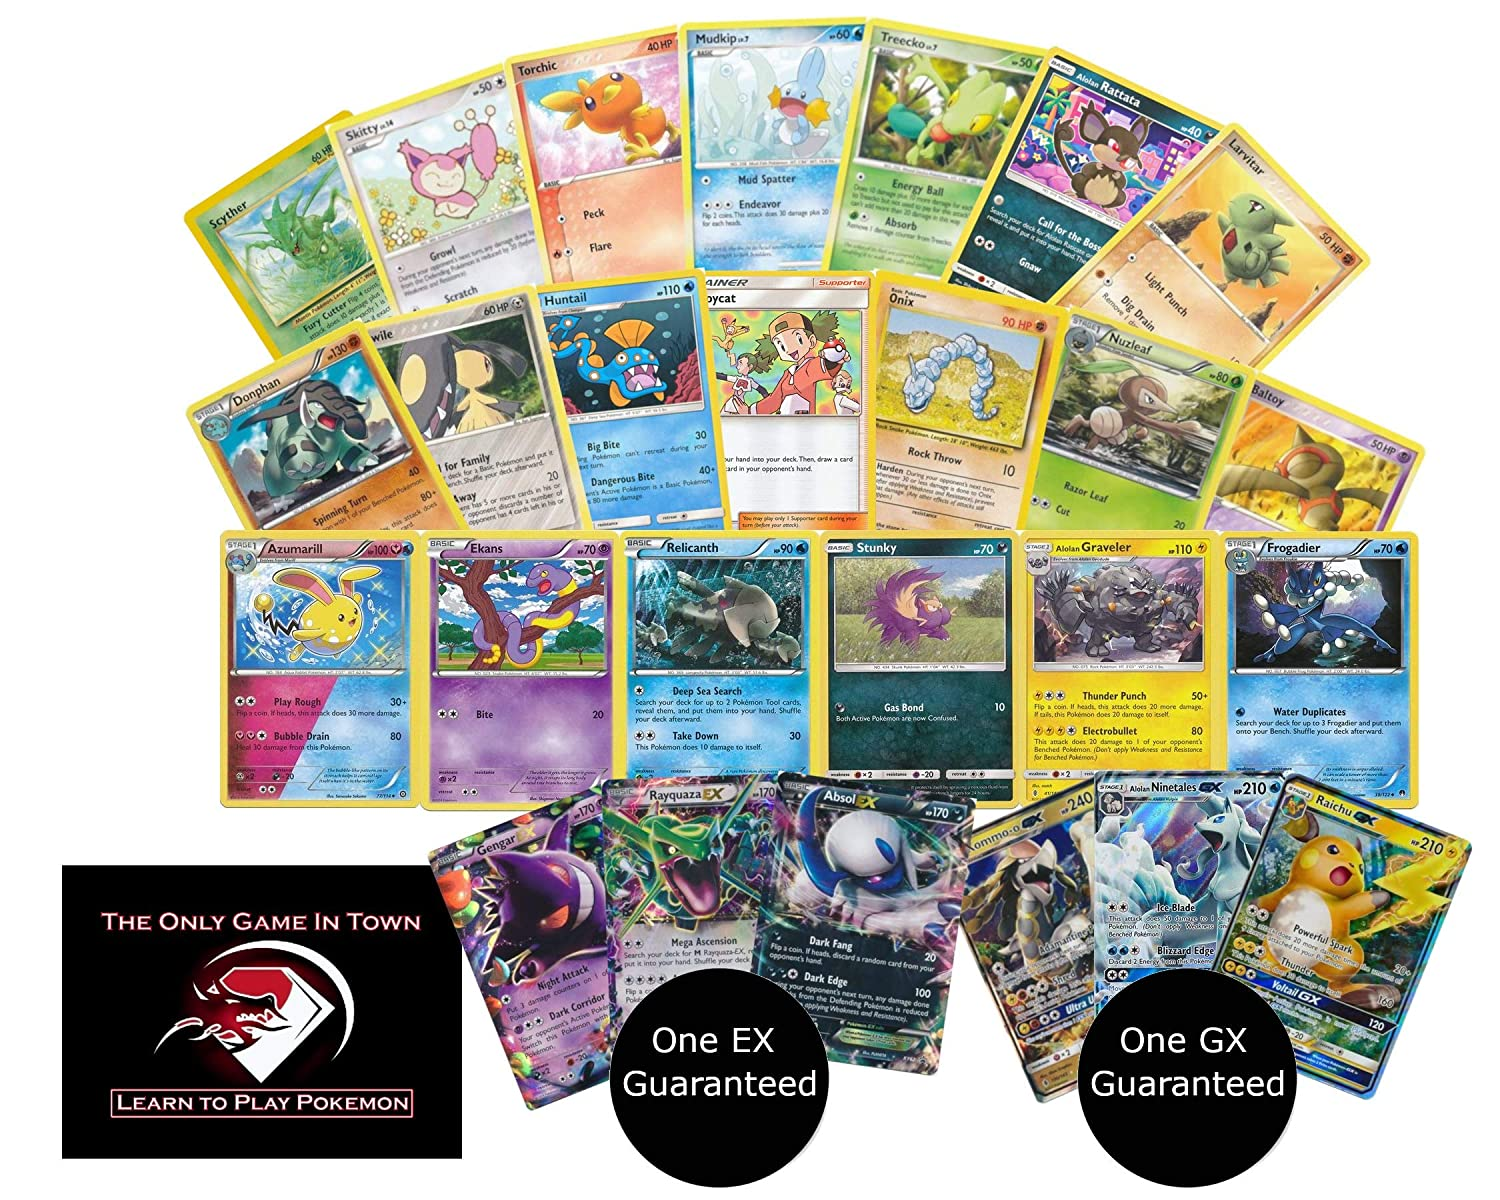 100 Pokemon Cards With 1 Ex And 1 Gx Ultra Rare Cards Plus Learn How To Play Pokemon Card Game Instructions